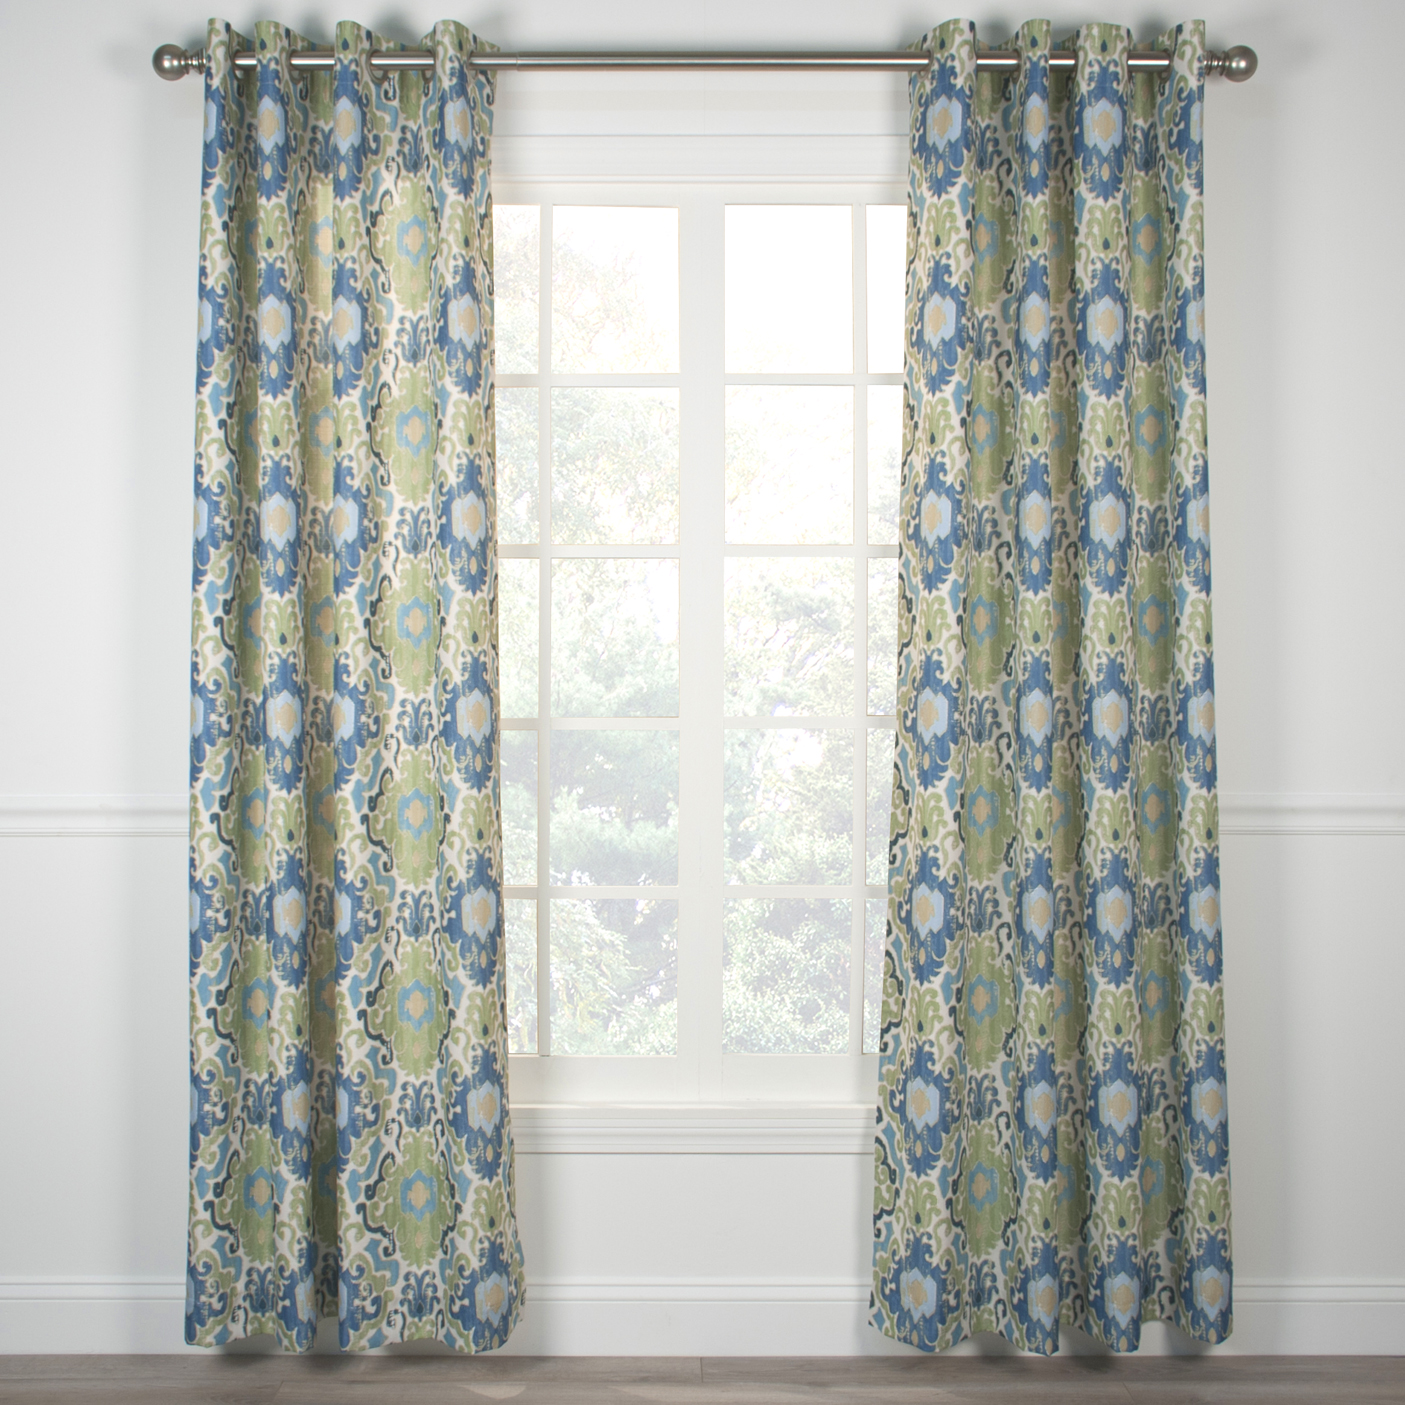 Tuscany grommet top curtain panel for Grommet curtains